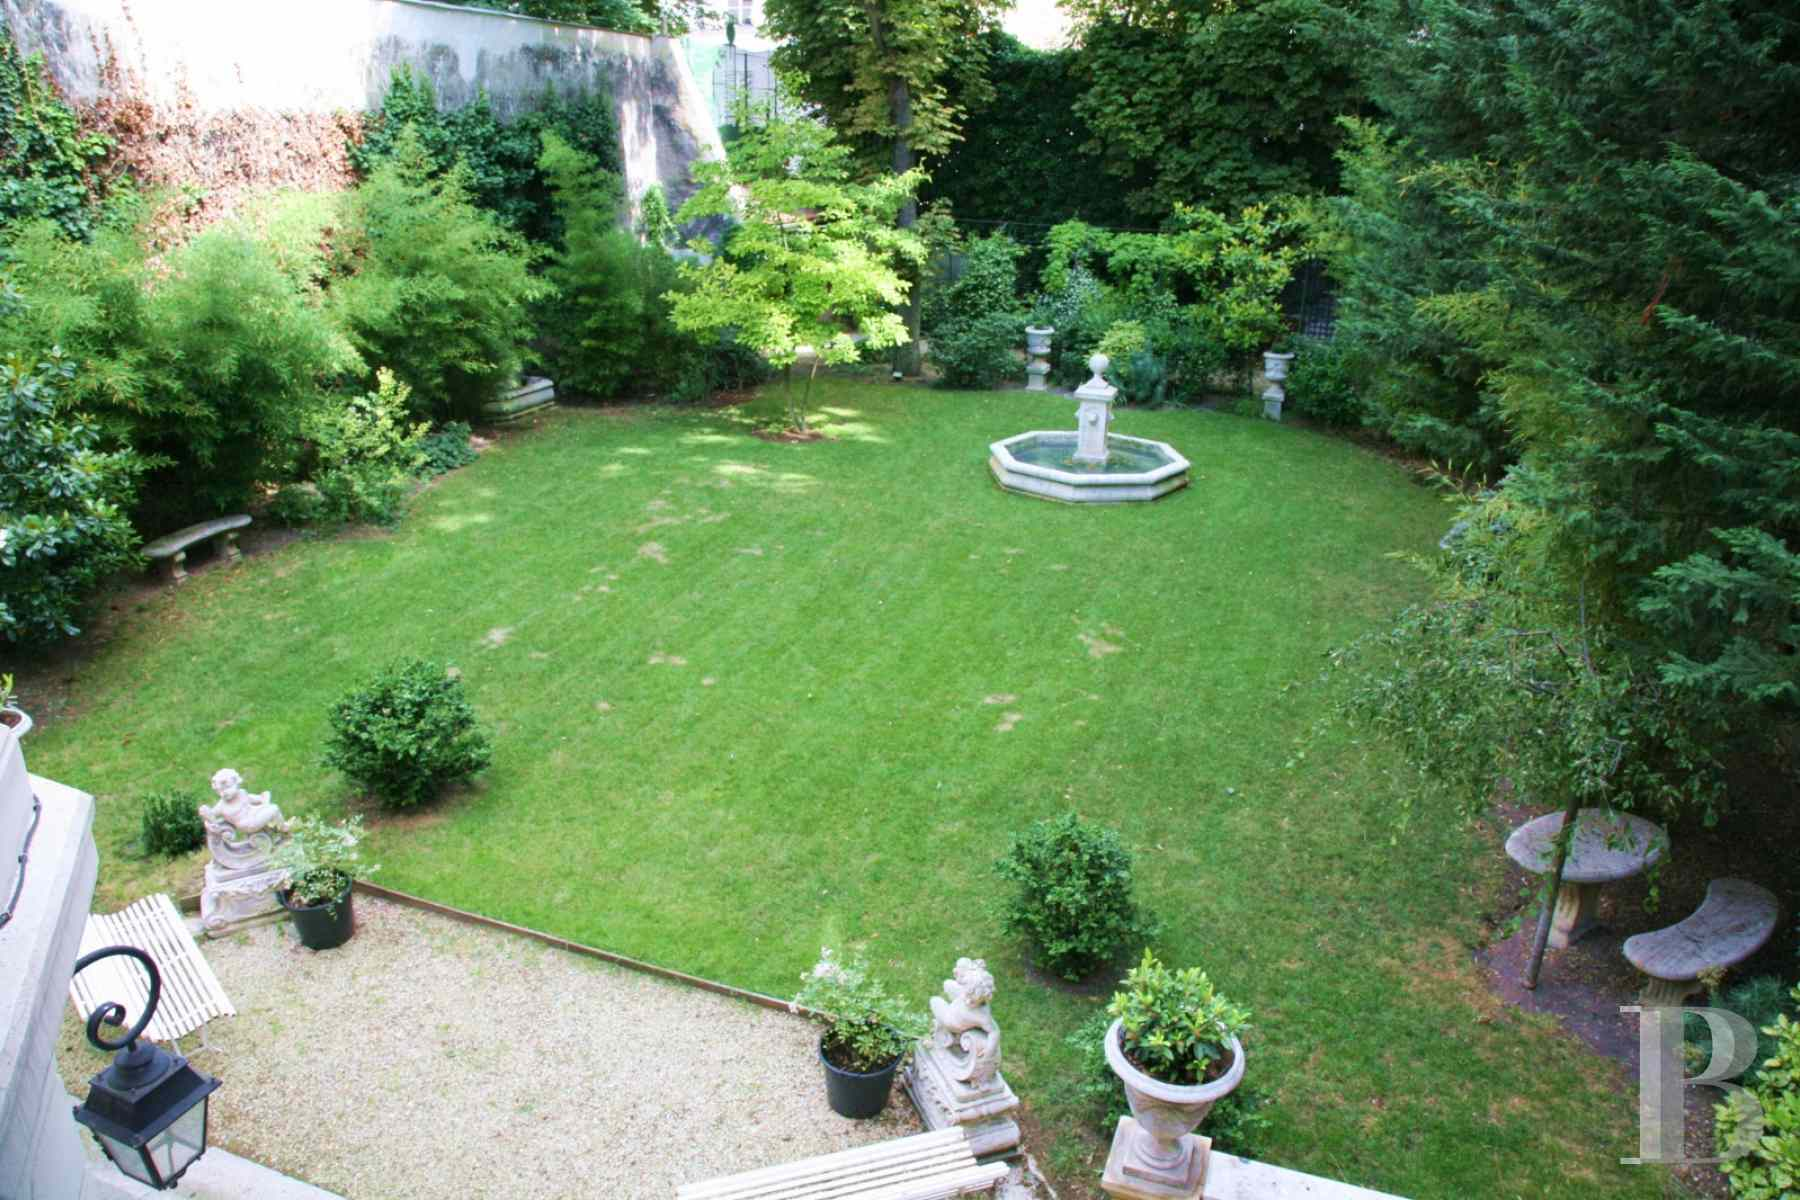 mansion houses for sale paris courtyard garden - 20 zoom